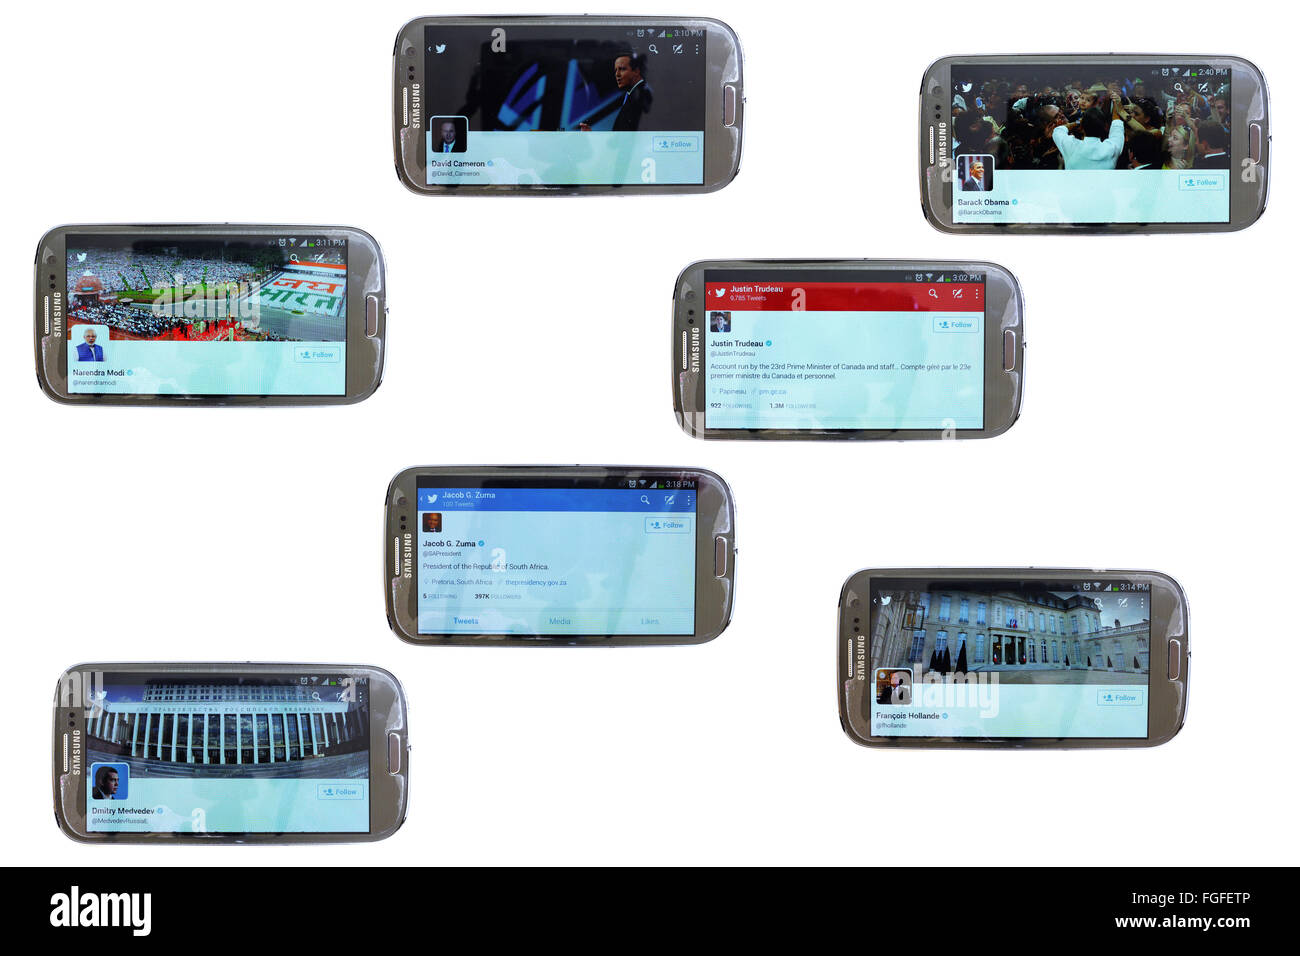 The twitter accounts of political leaders on the screens of smartphones photographed against a white background. - Stock Image